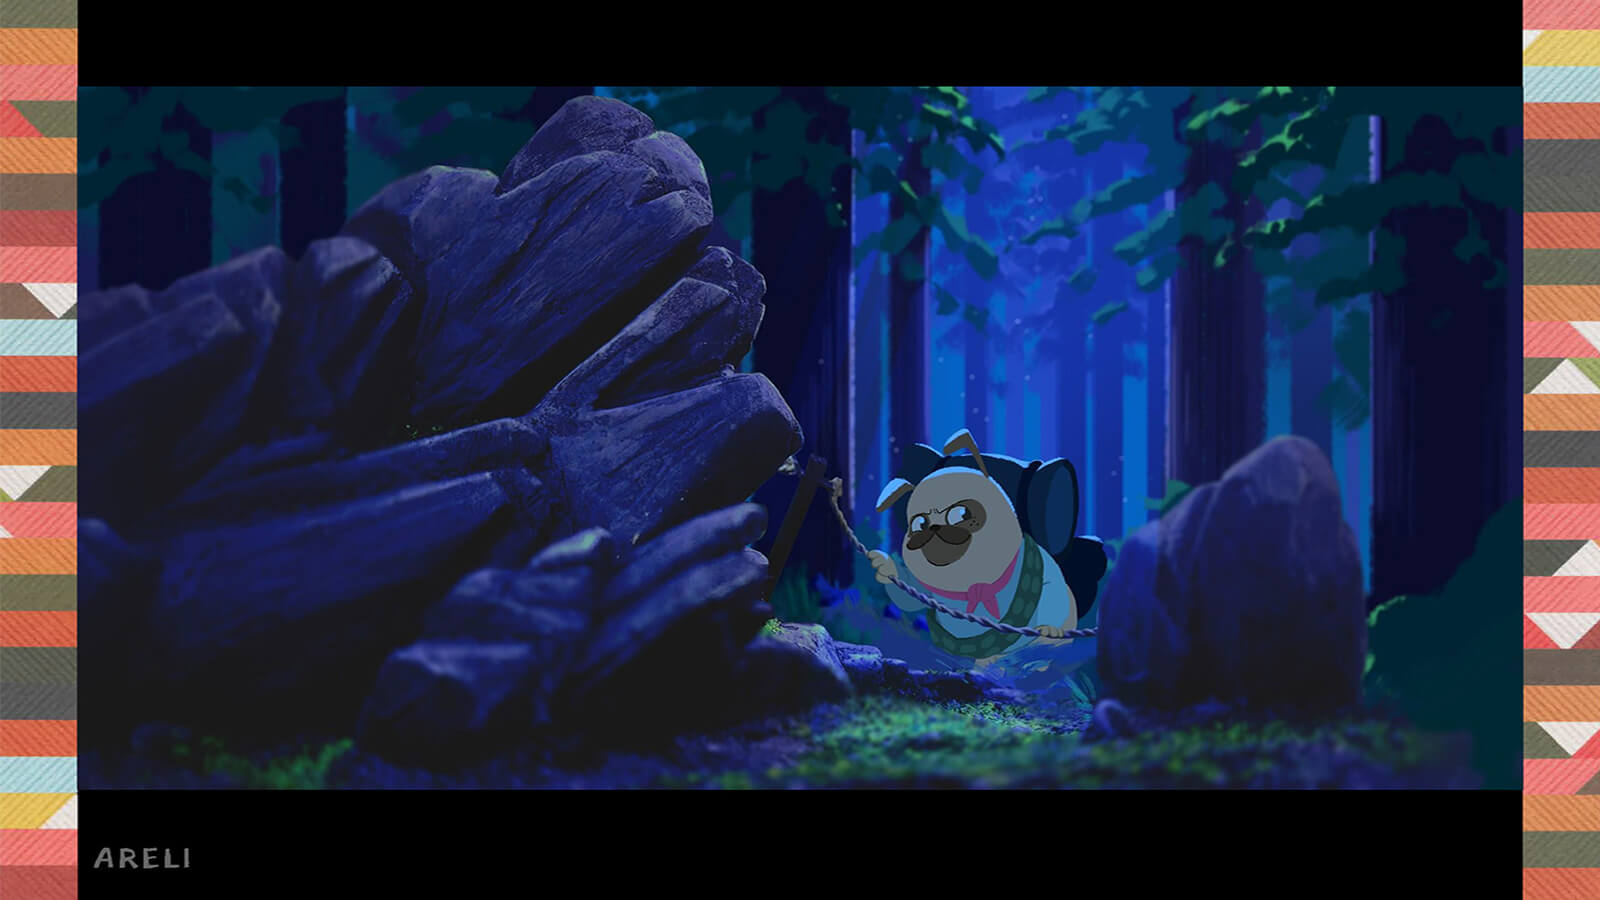 A pug walking in a darkened forest.